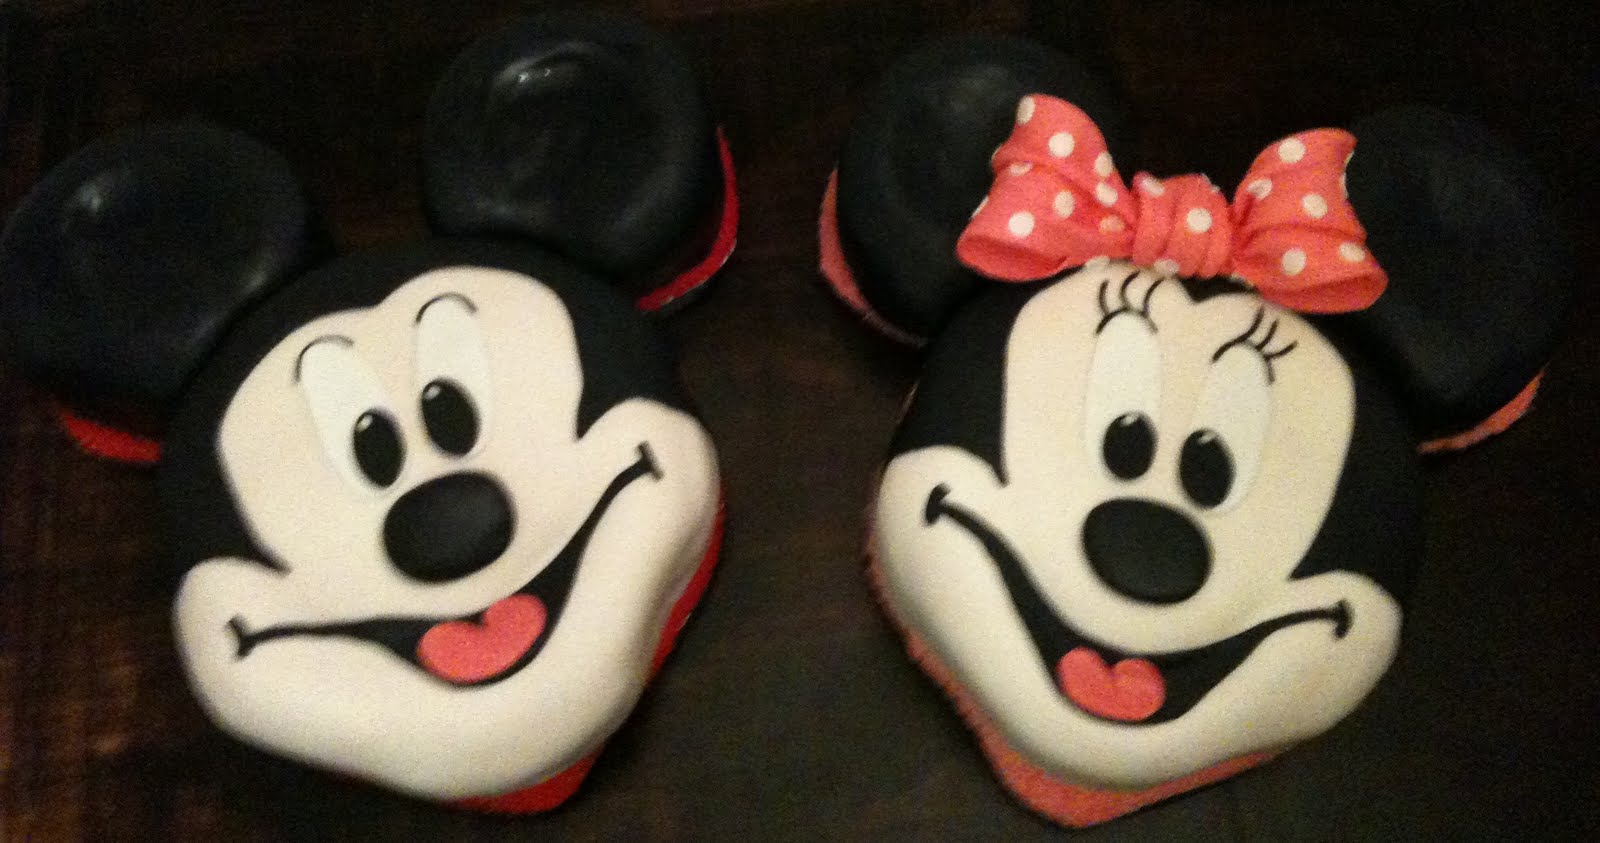 Pictures Of Mickey Mouse Face Cakes : sugar: Mickey & Minnie Mouse Face Cakes